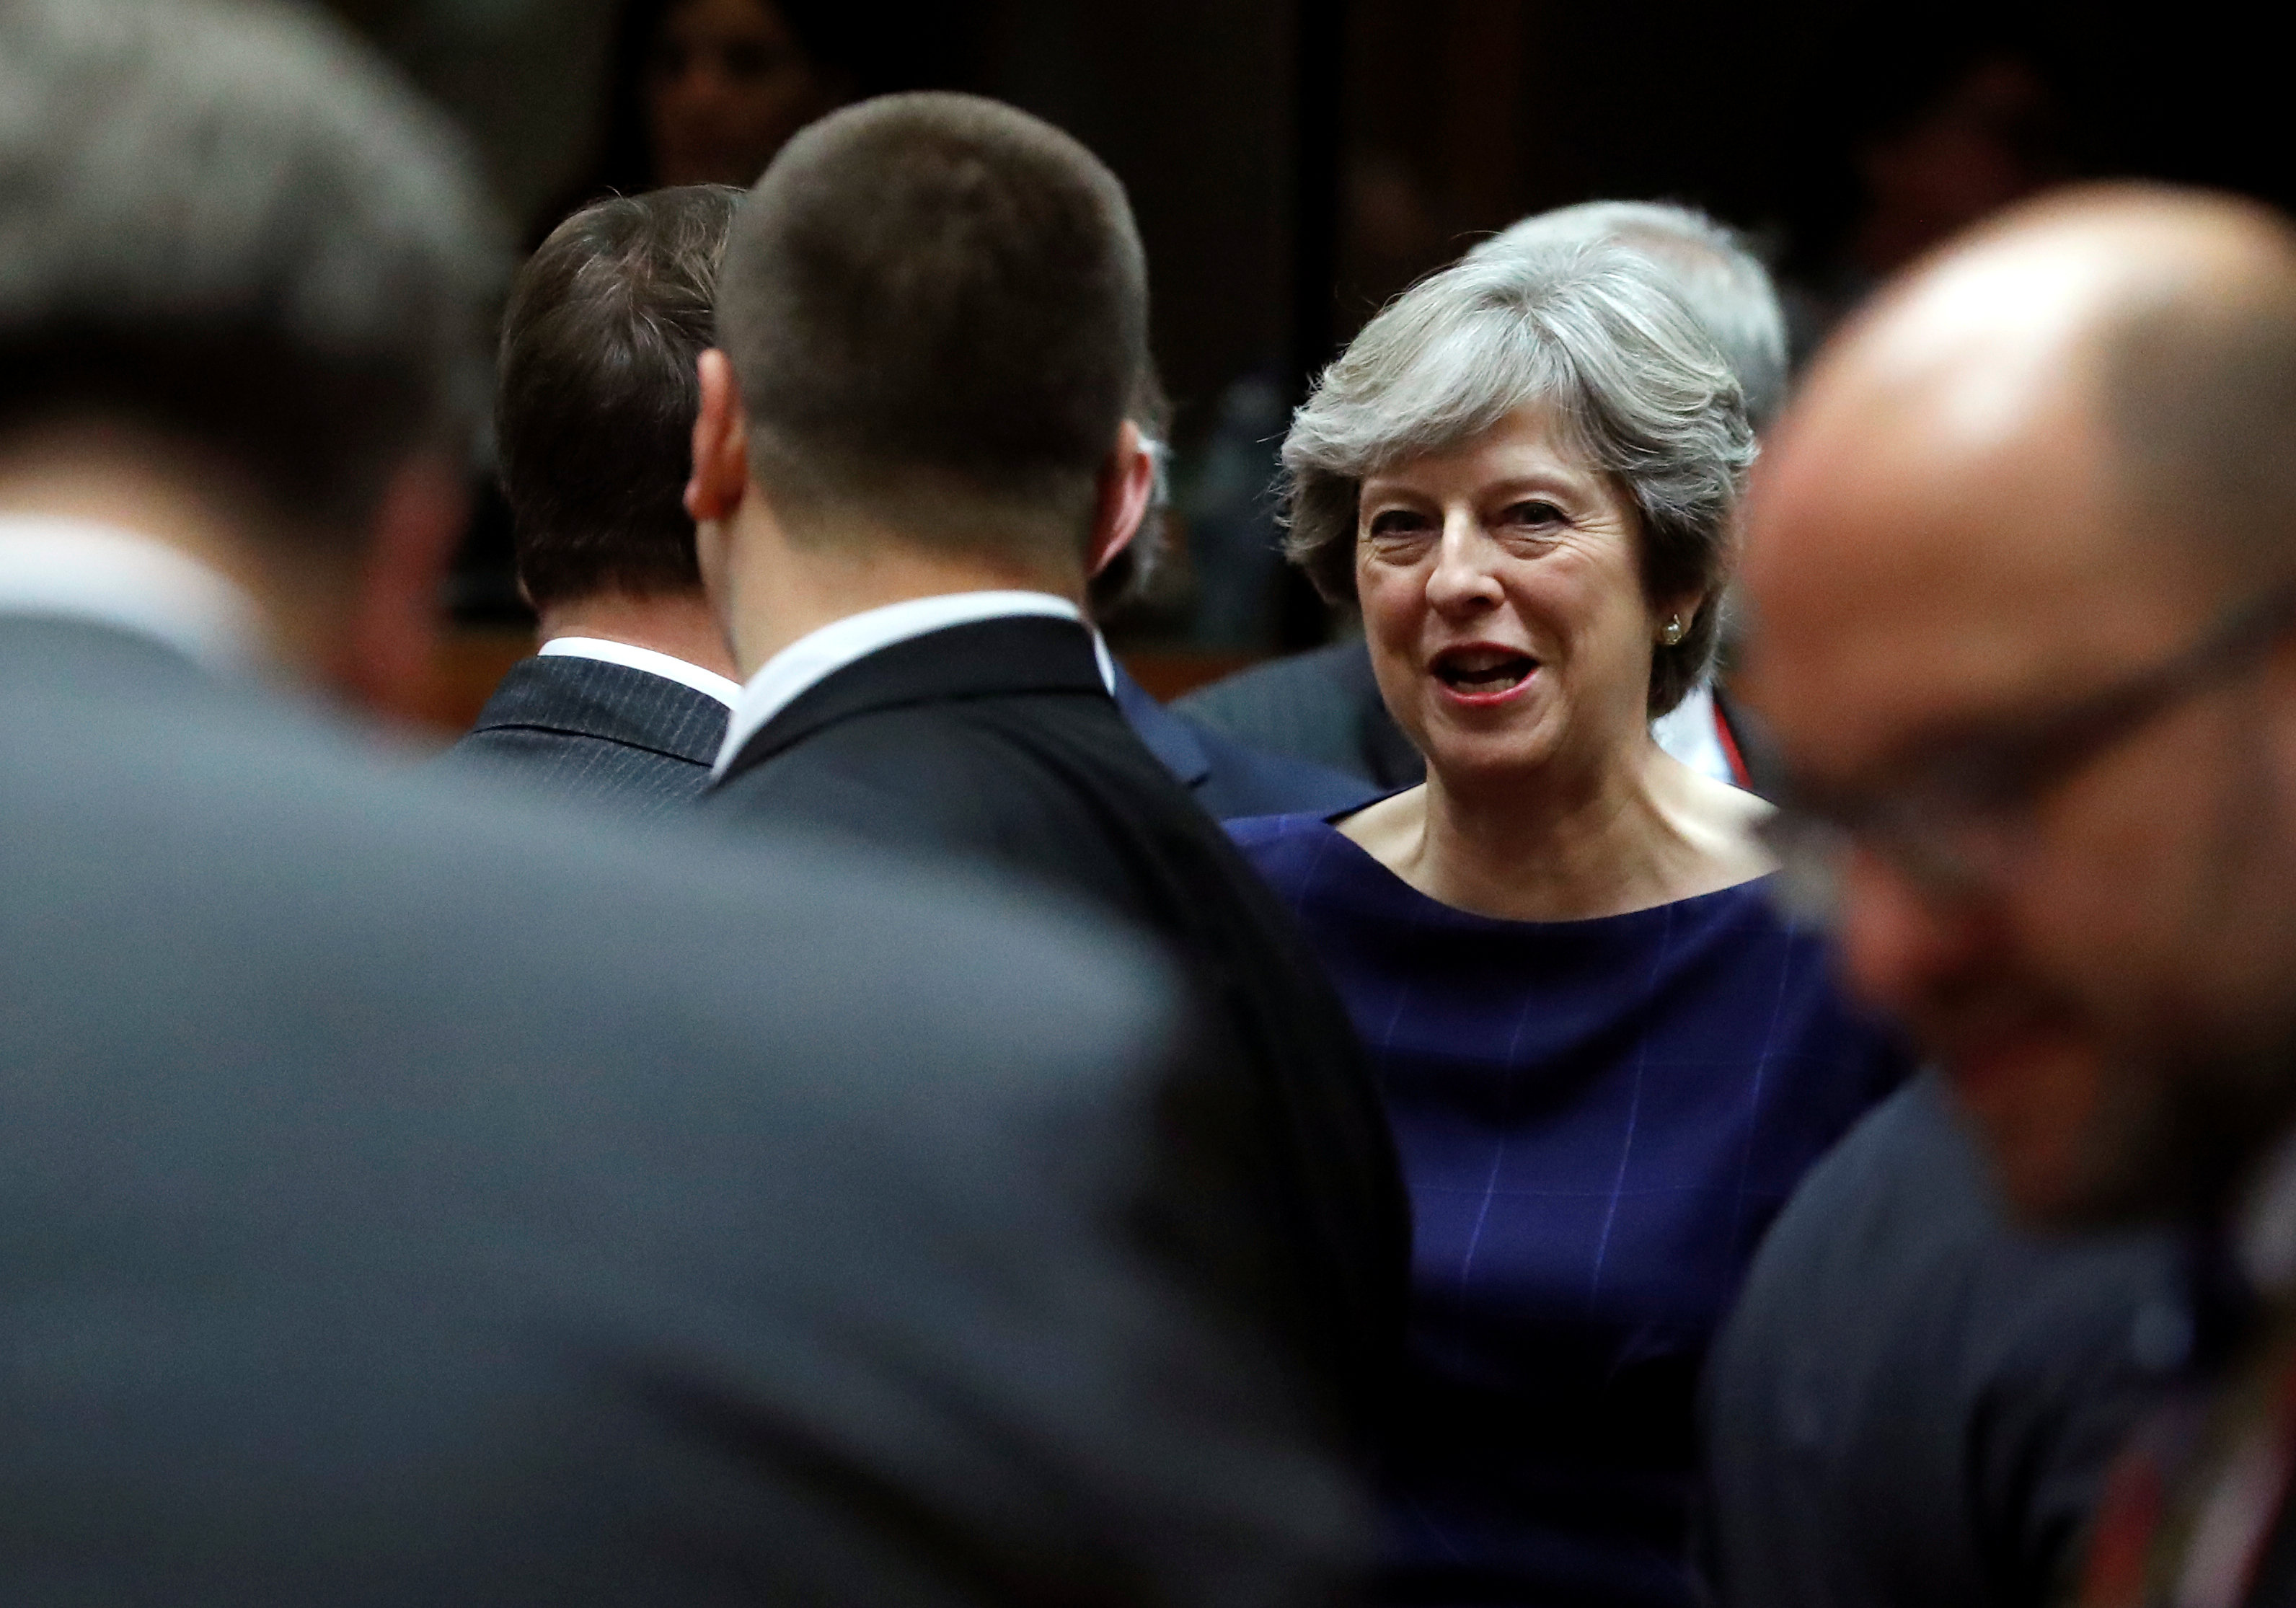 Britain's Prime Minister Theresa May (C) attends the EU summit in Brussels, Belgium October 19, 2017. REUTERS/Yves Herman